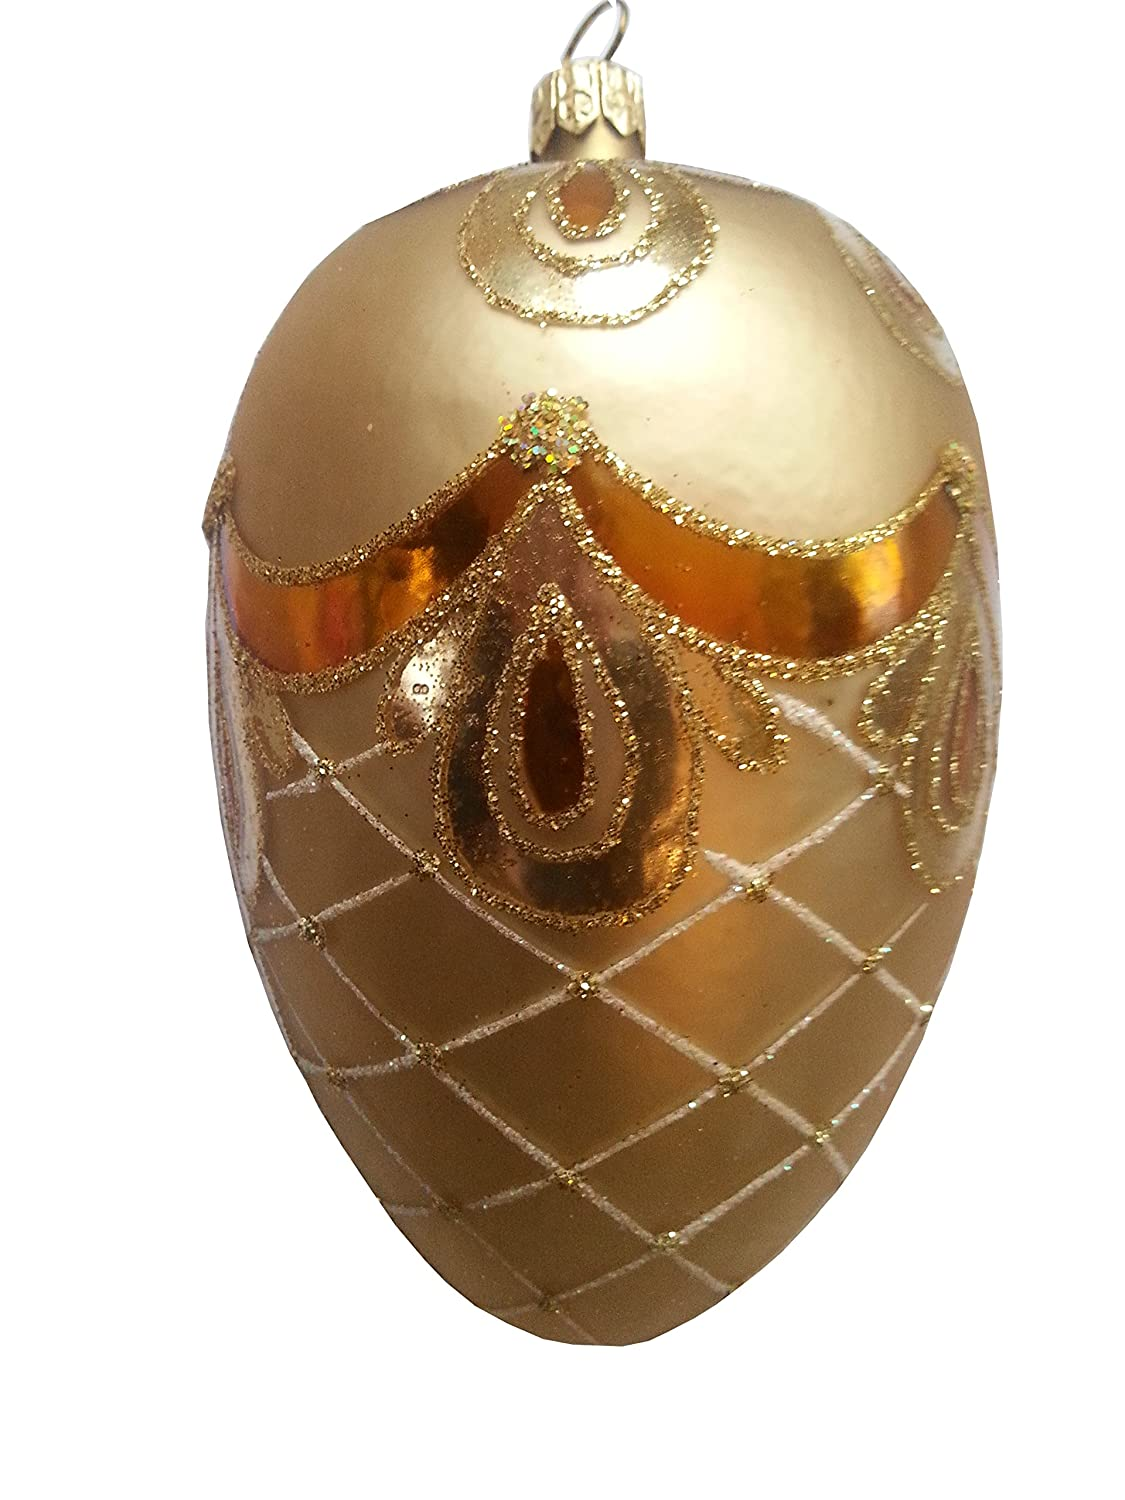 Amazon.com: Faberge Egg Golden Bow. Hand Painted Christmas ...